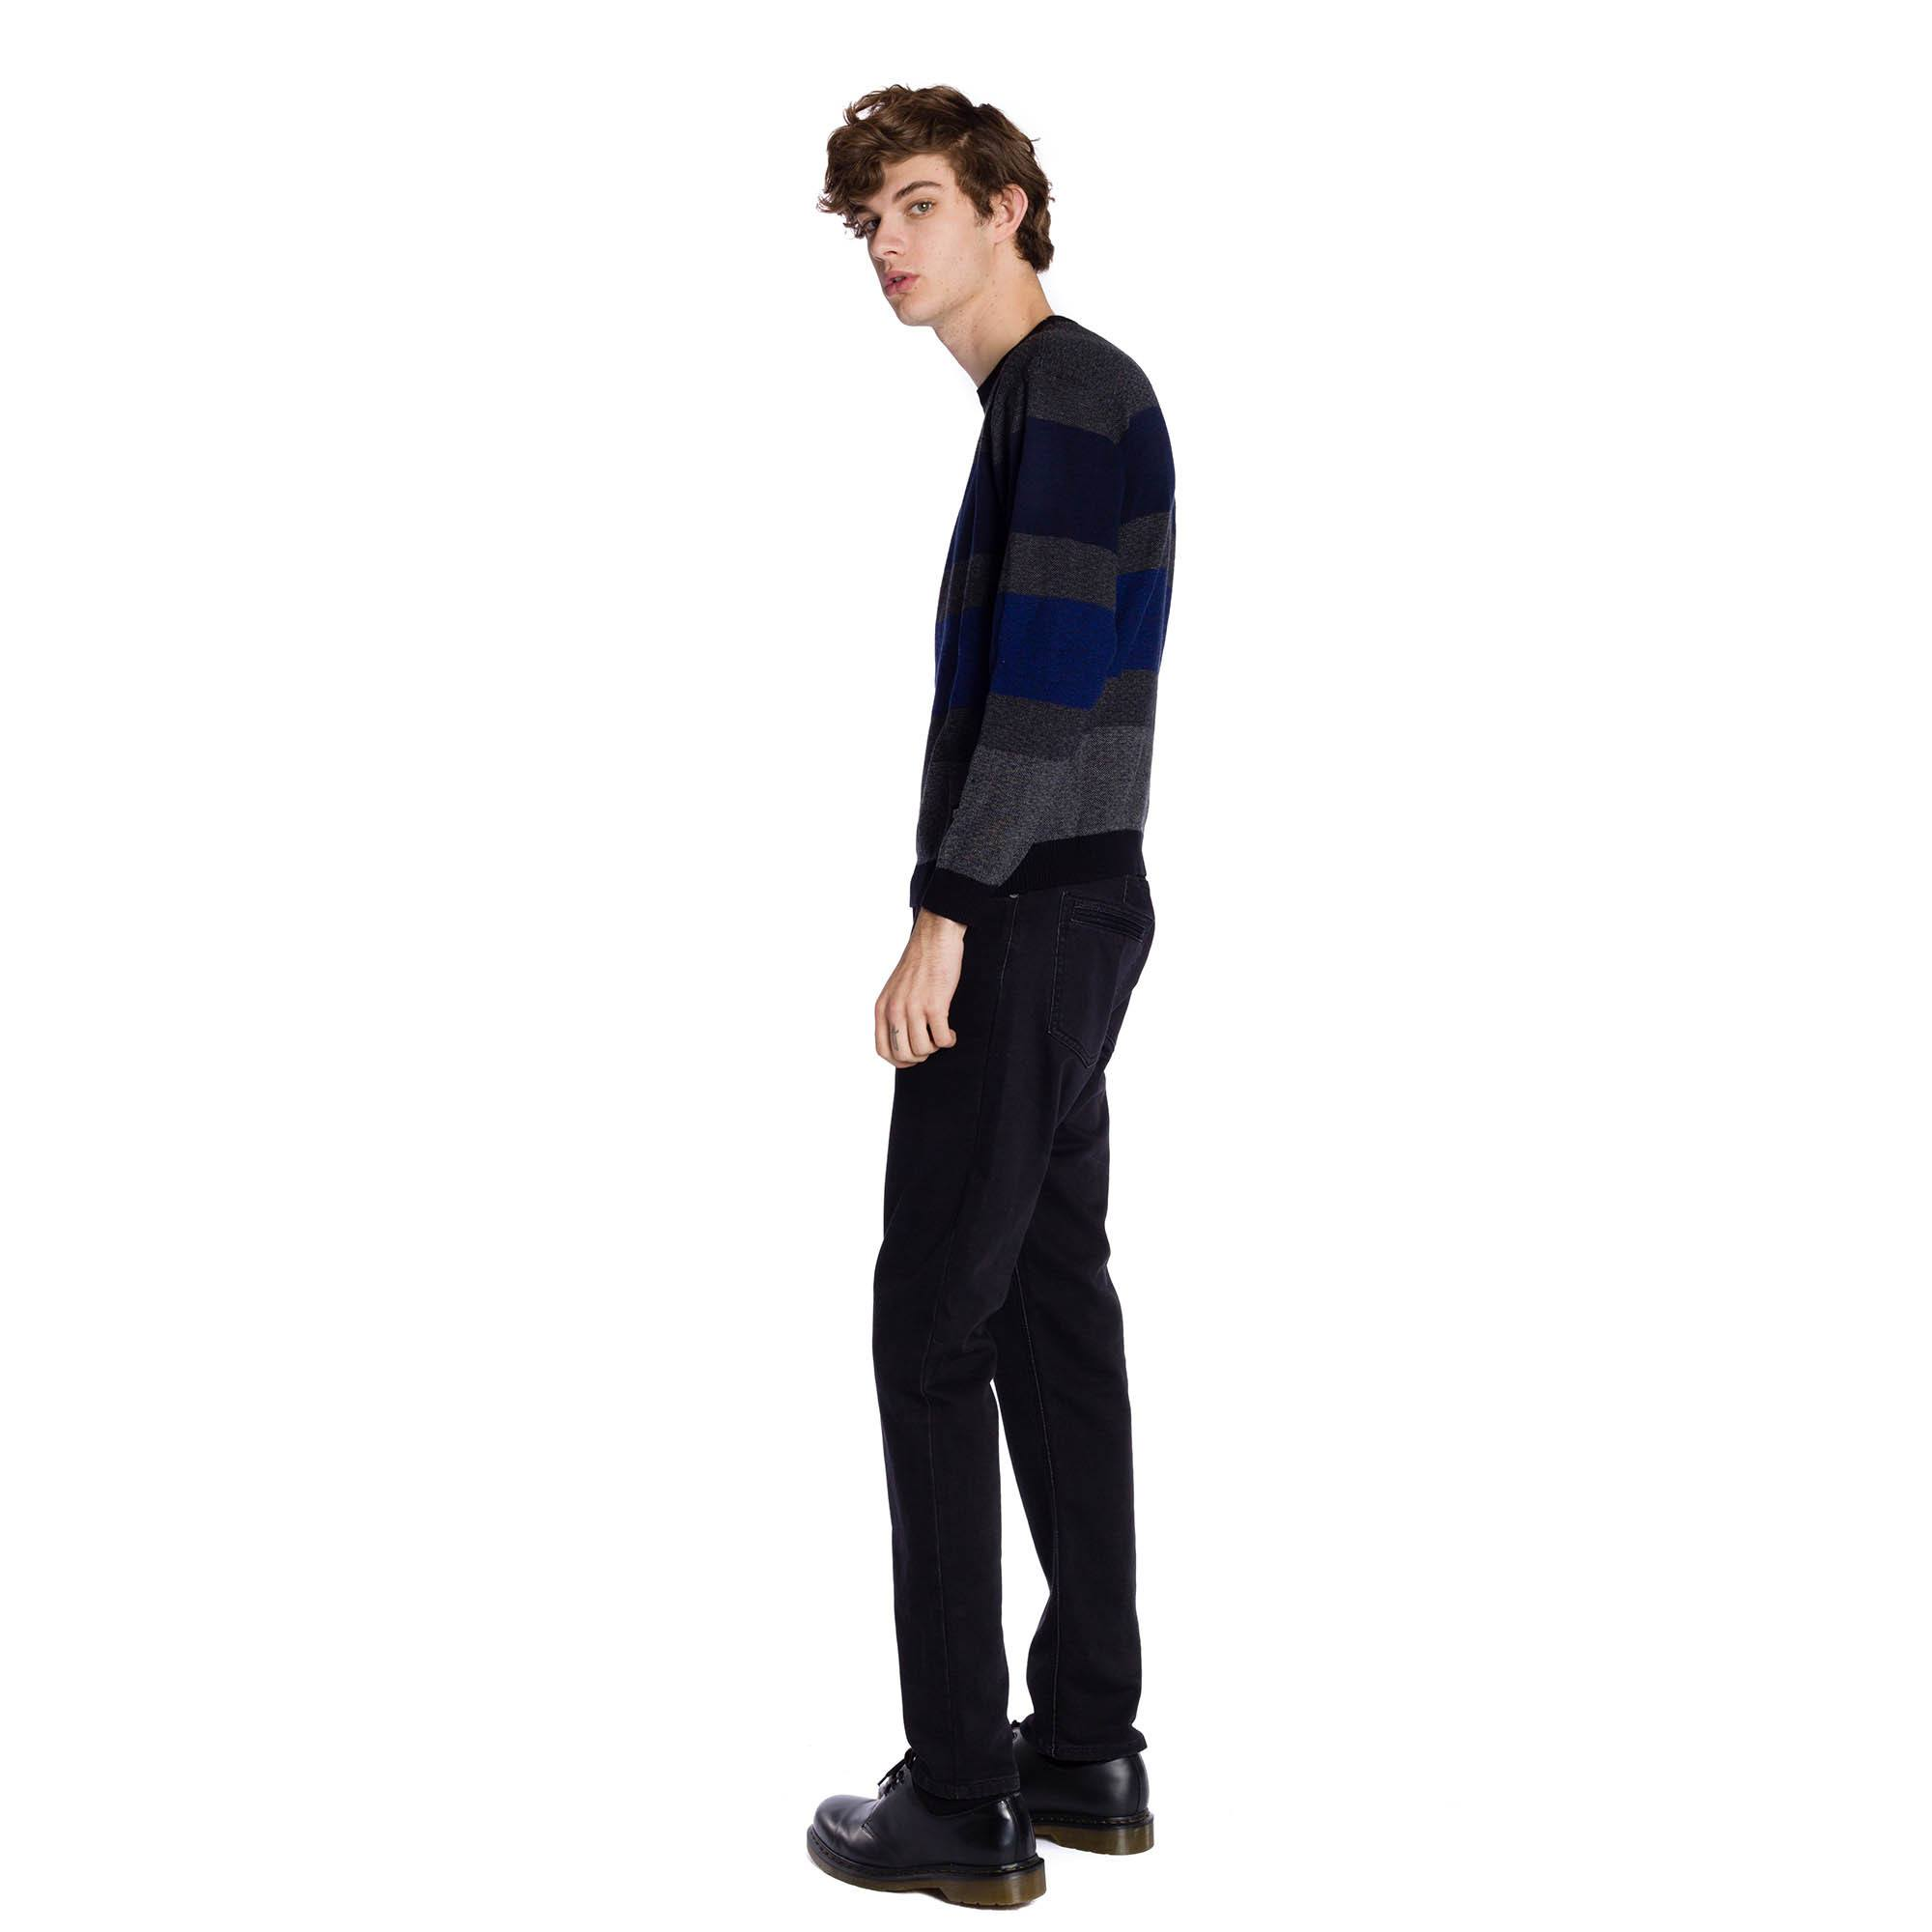 Frisco Sweater - Black